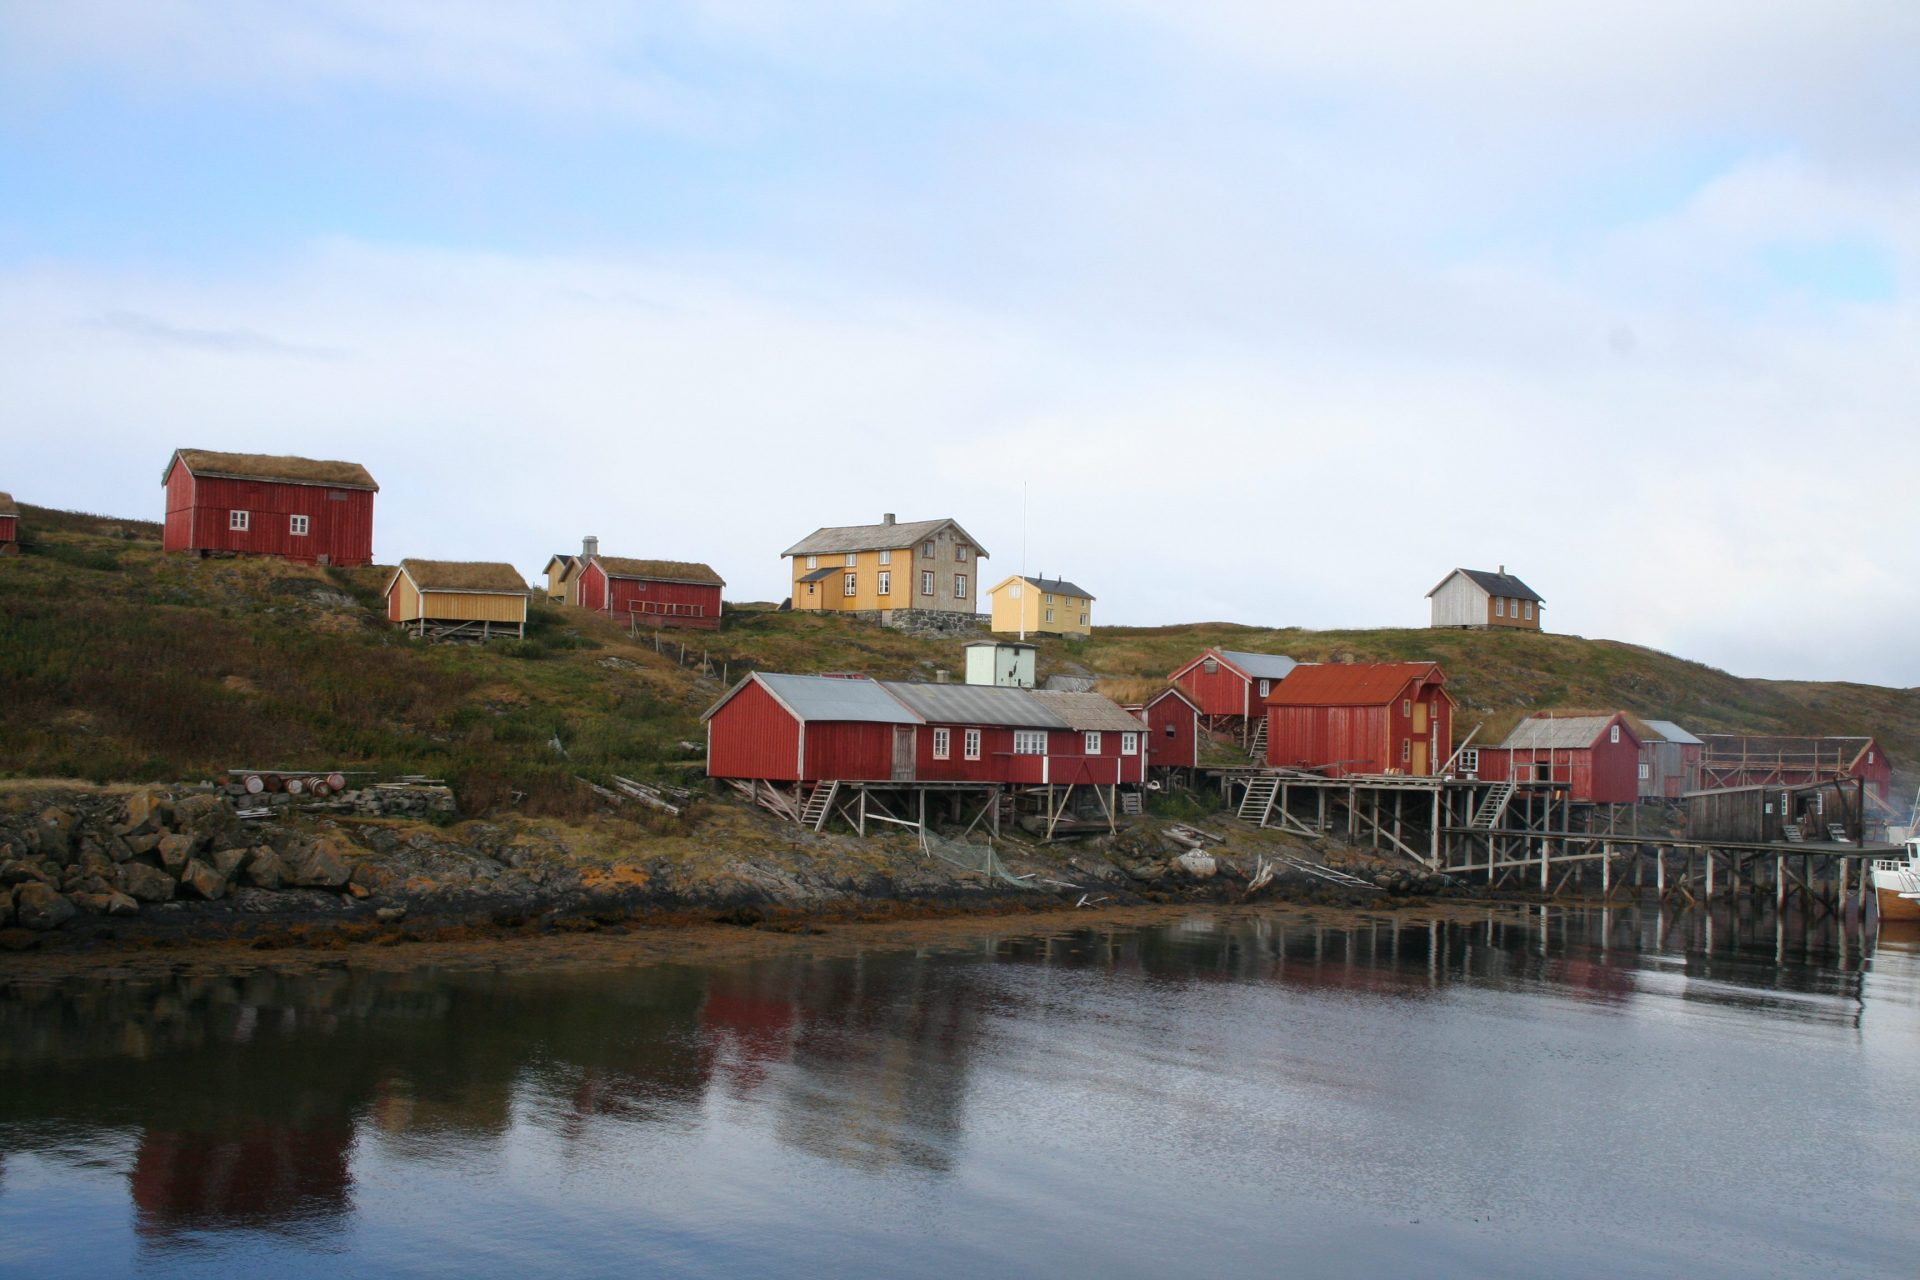 Photo of the buildings by the shore at the Vega Archipelago. Photo by Jon Brænne, the Directorate for Cultural Heritage